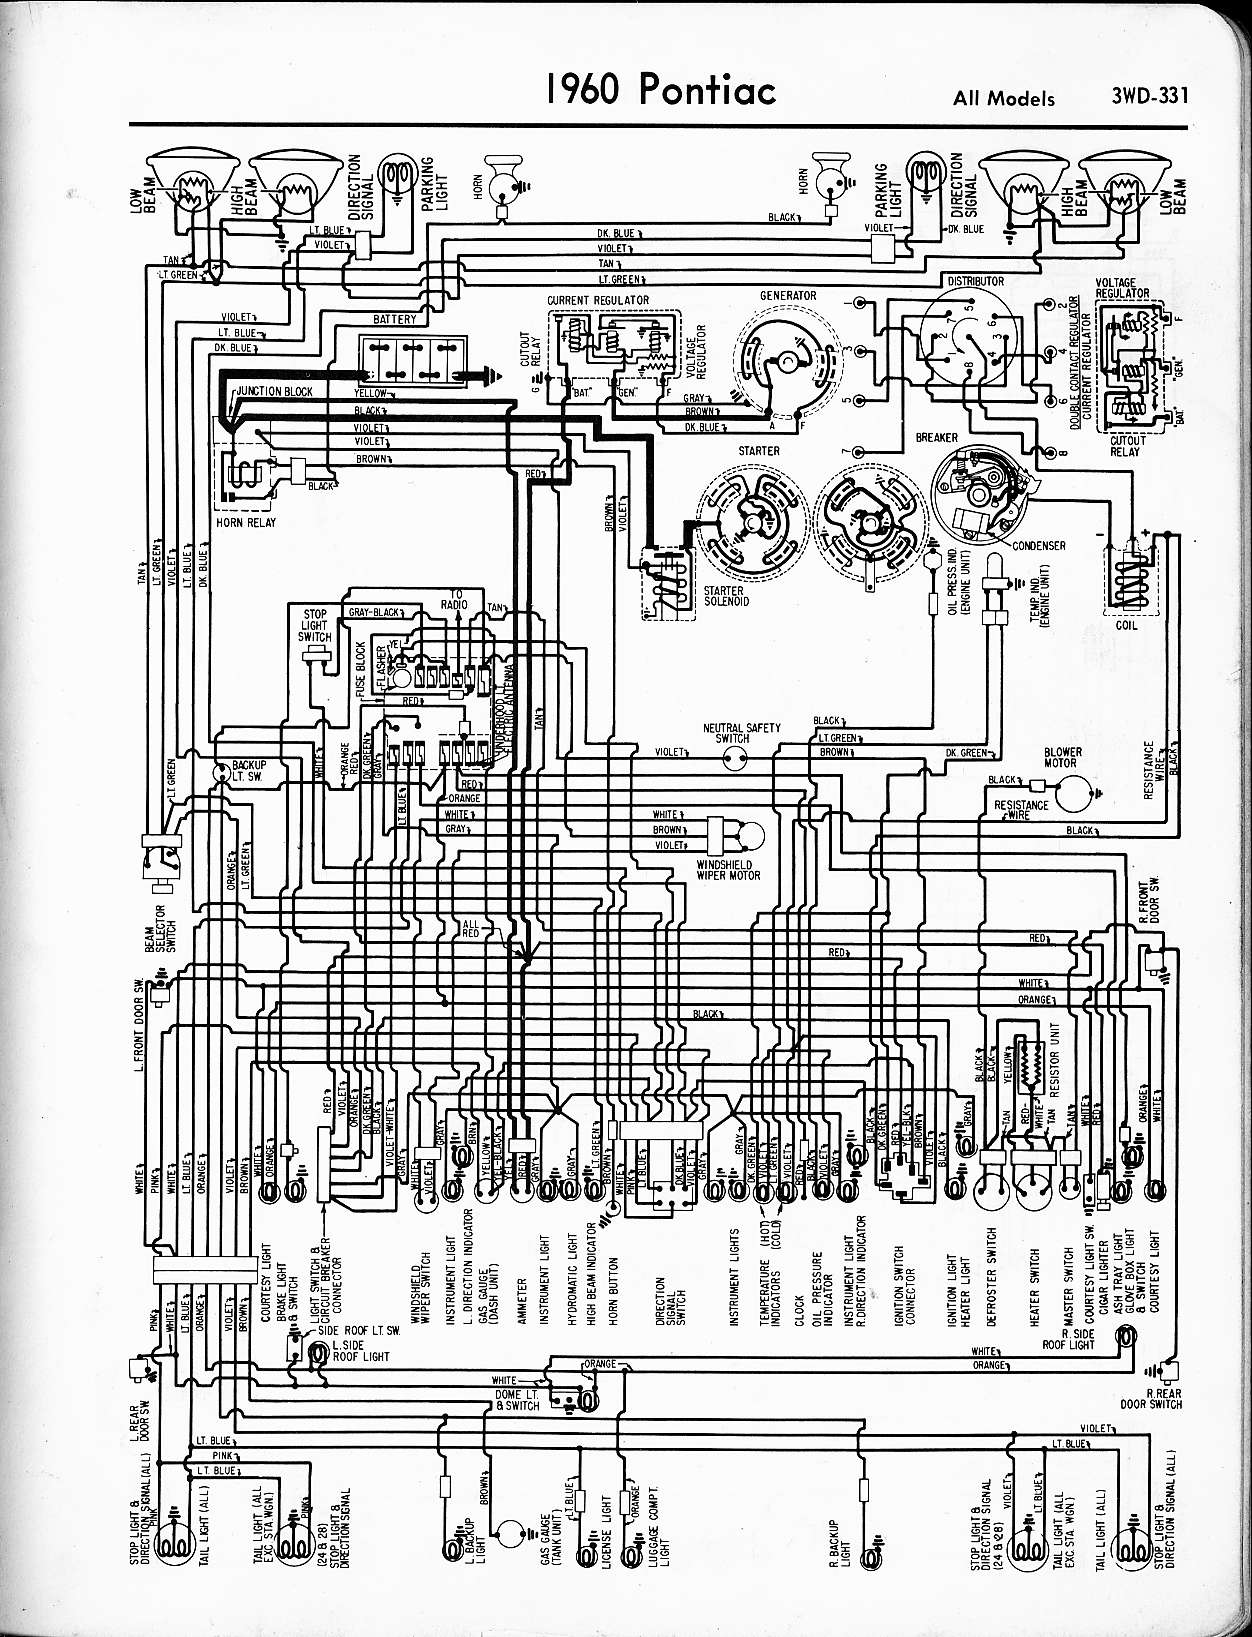 Pontiac Wiring Schematics Diagram Data Jazz Bass Parallel Wallace Racing Diagrams 2001 Grand Am